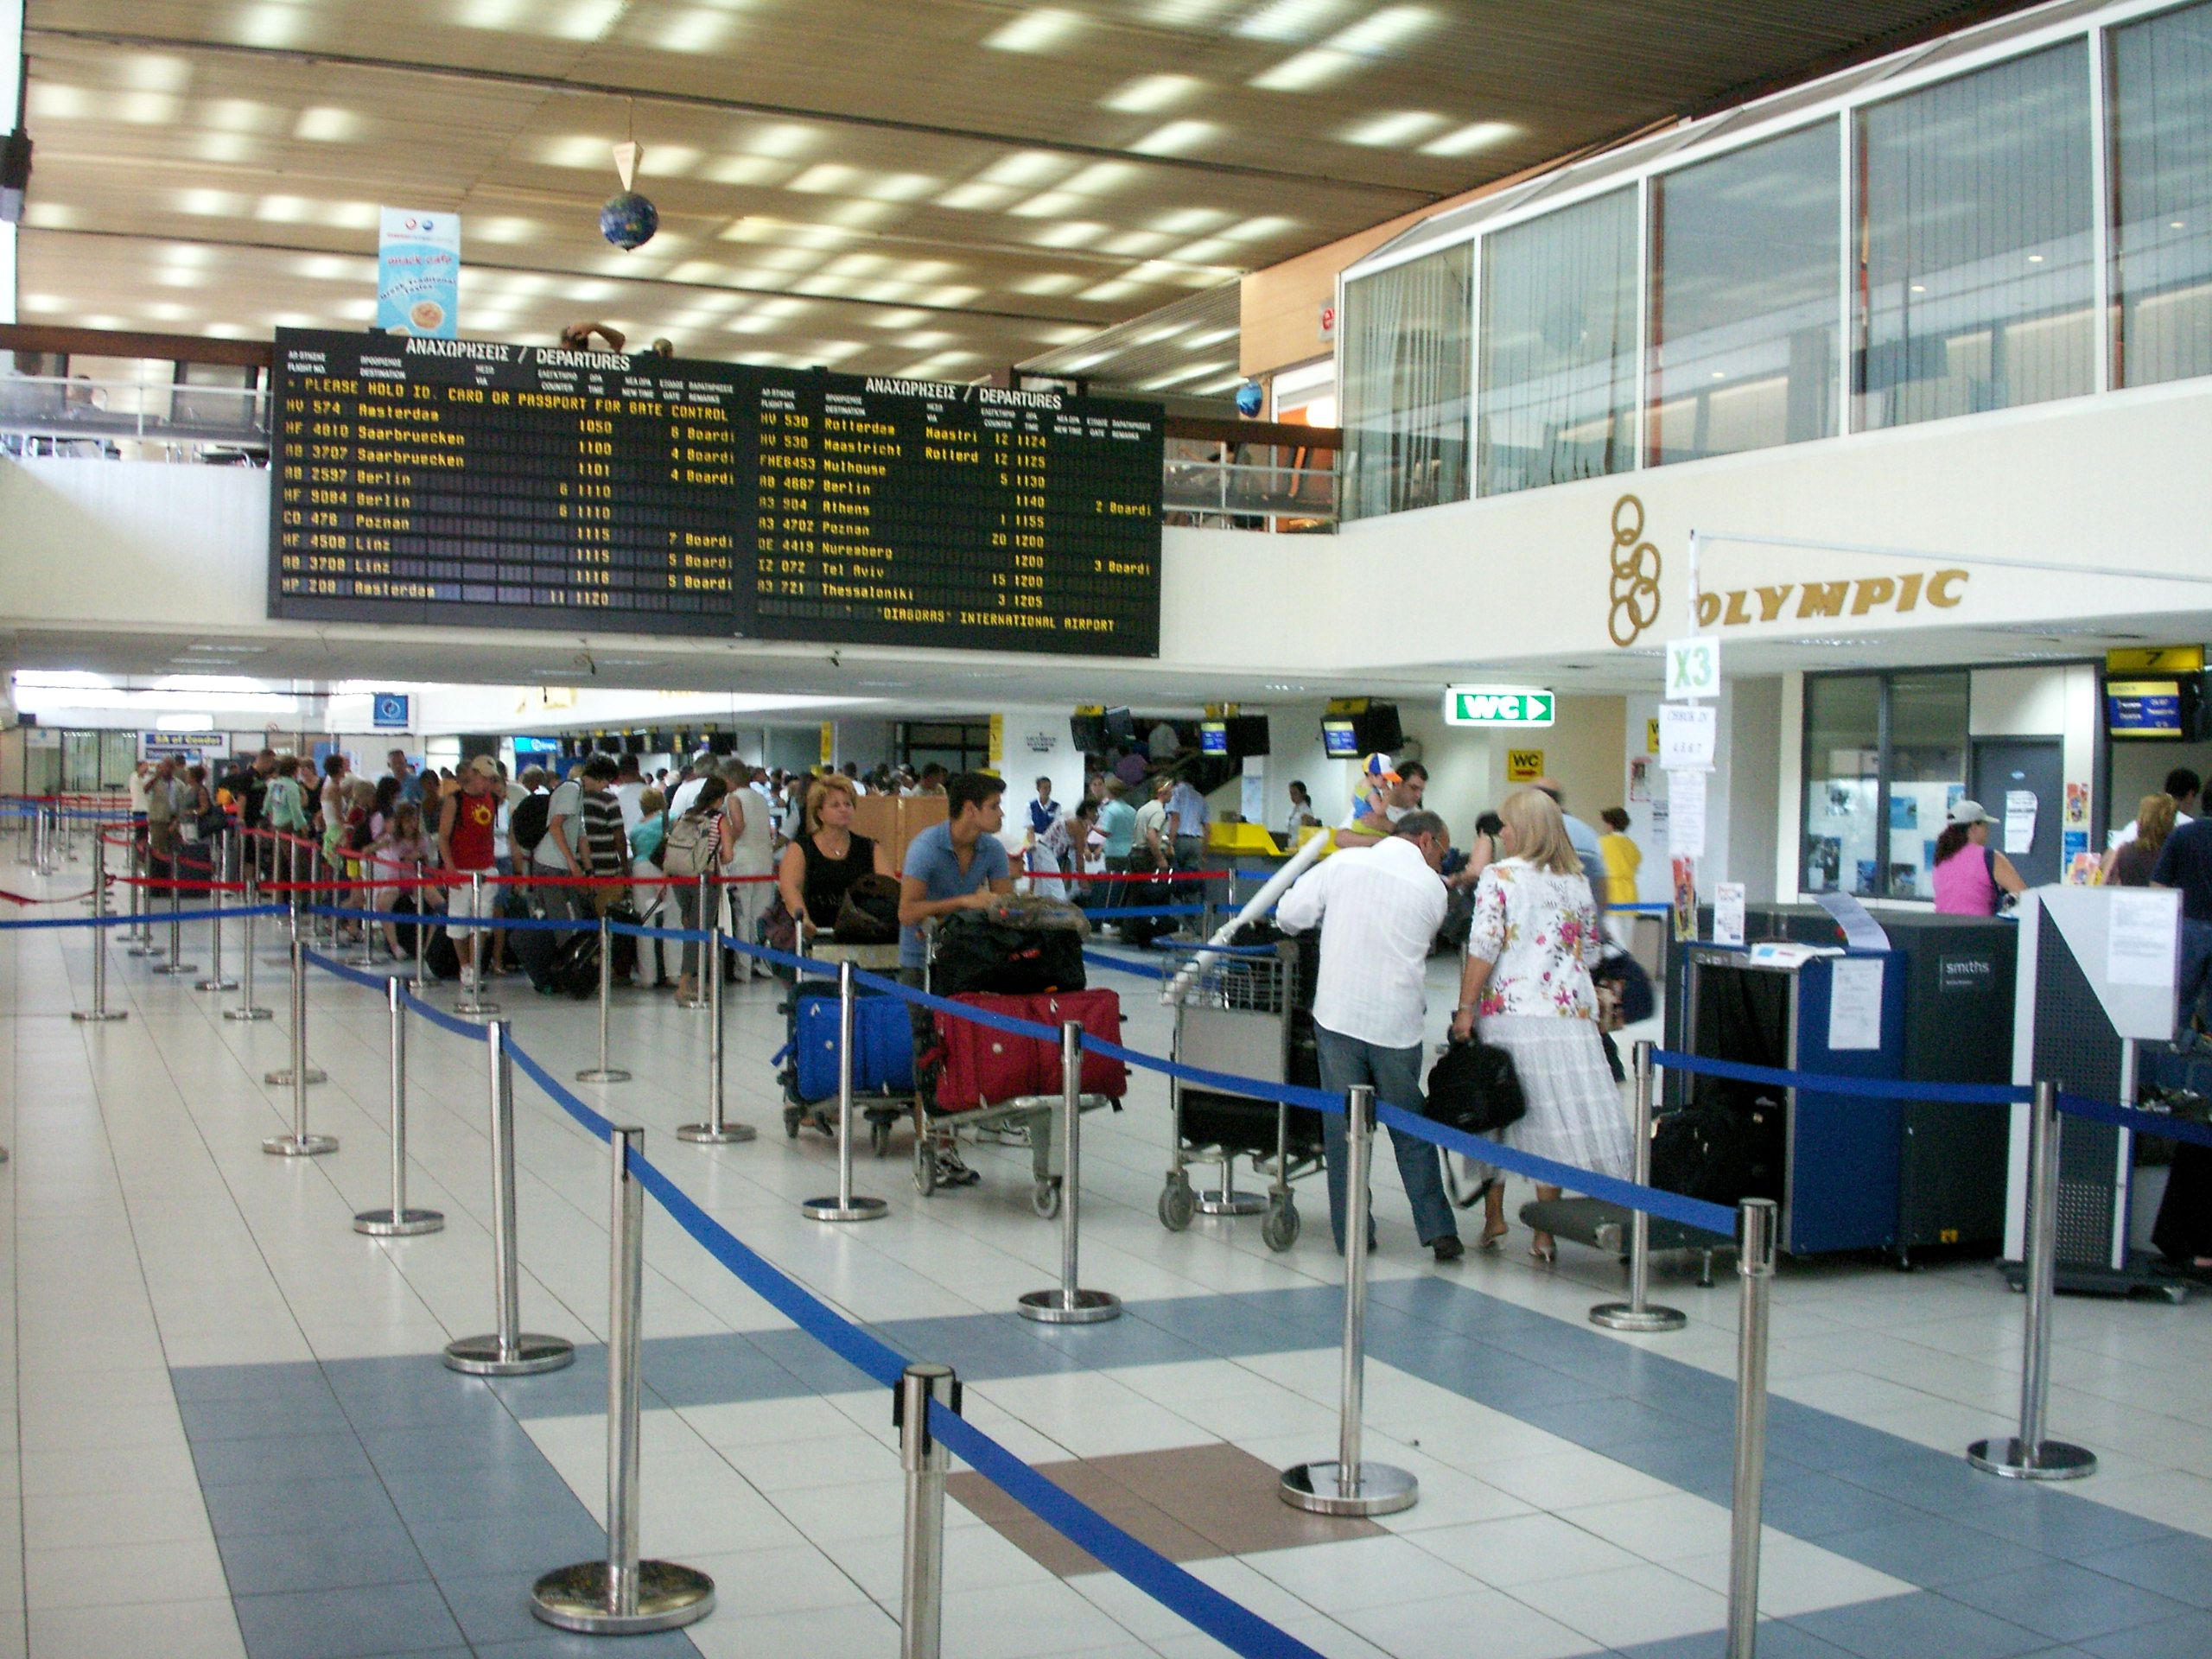 IATA Codes for Airports in Greece